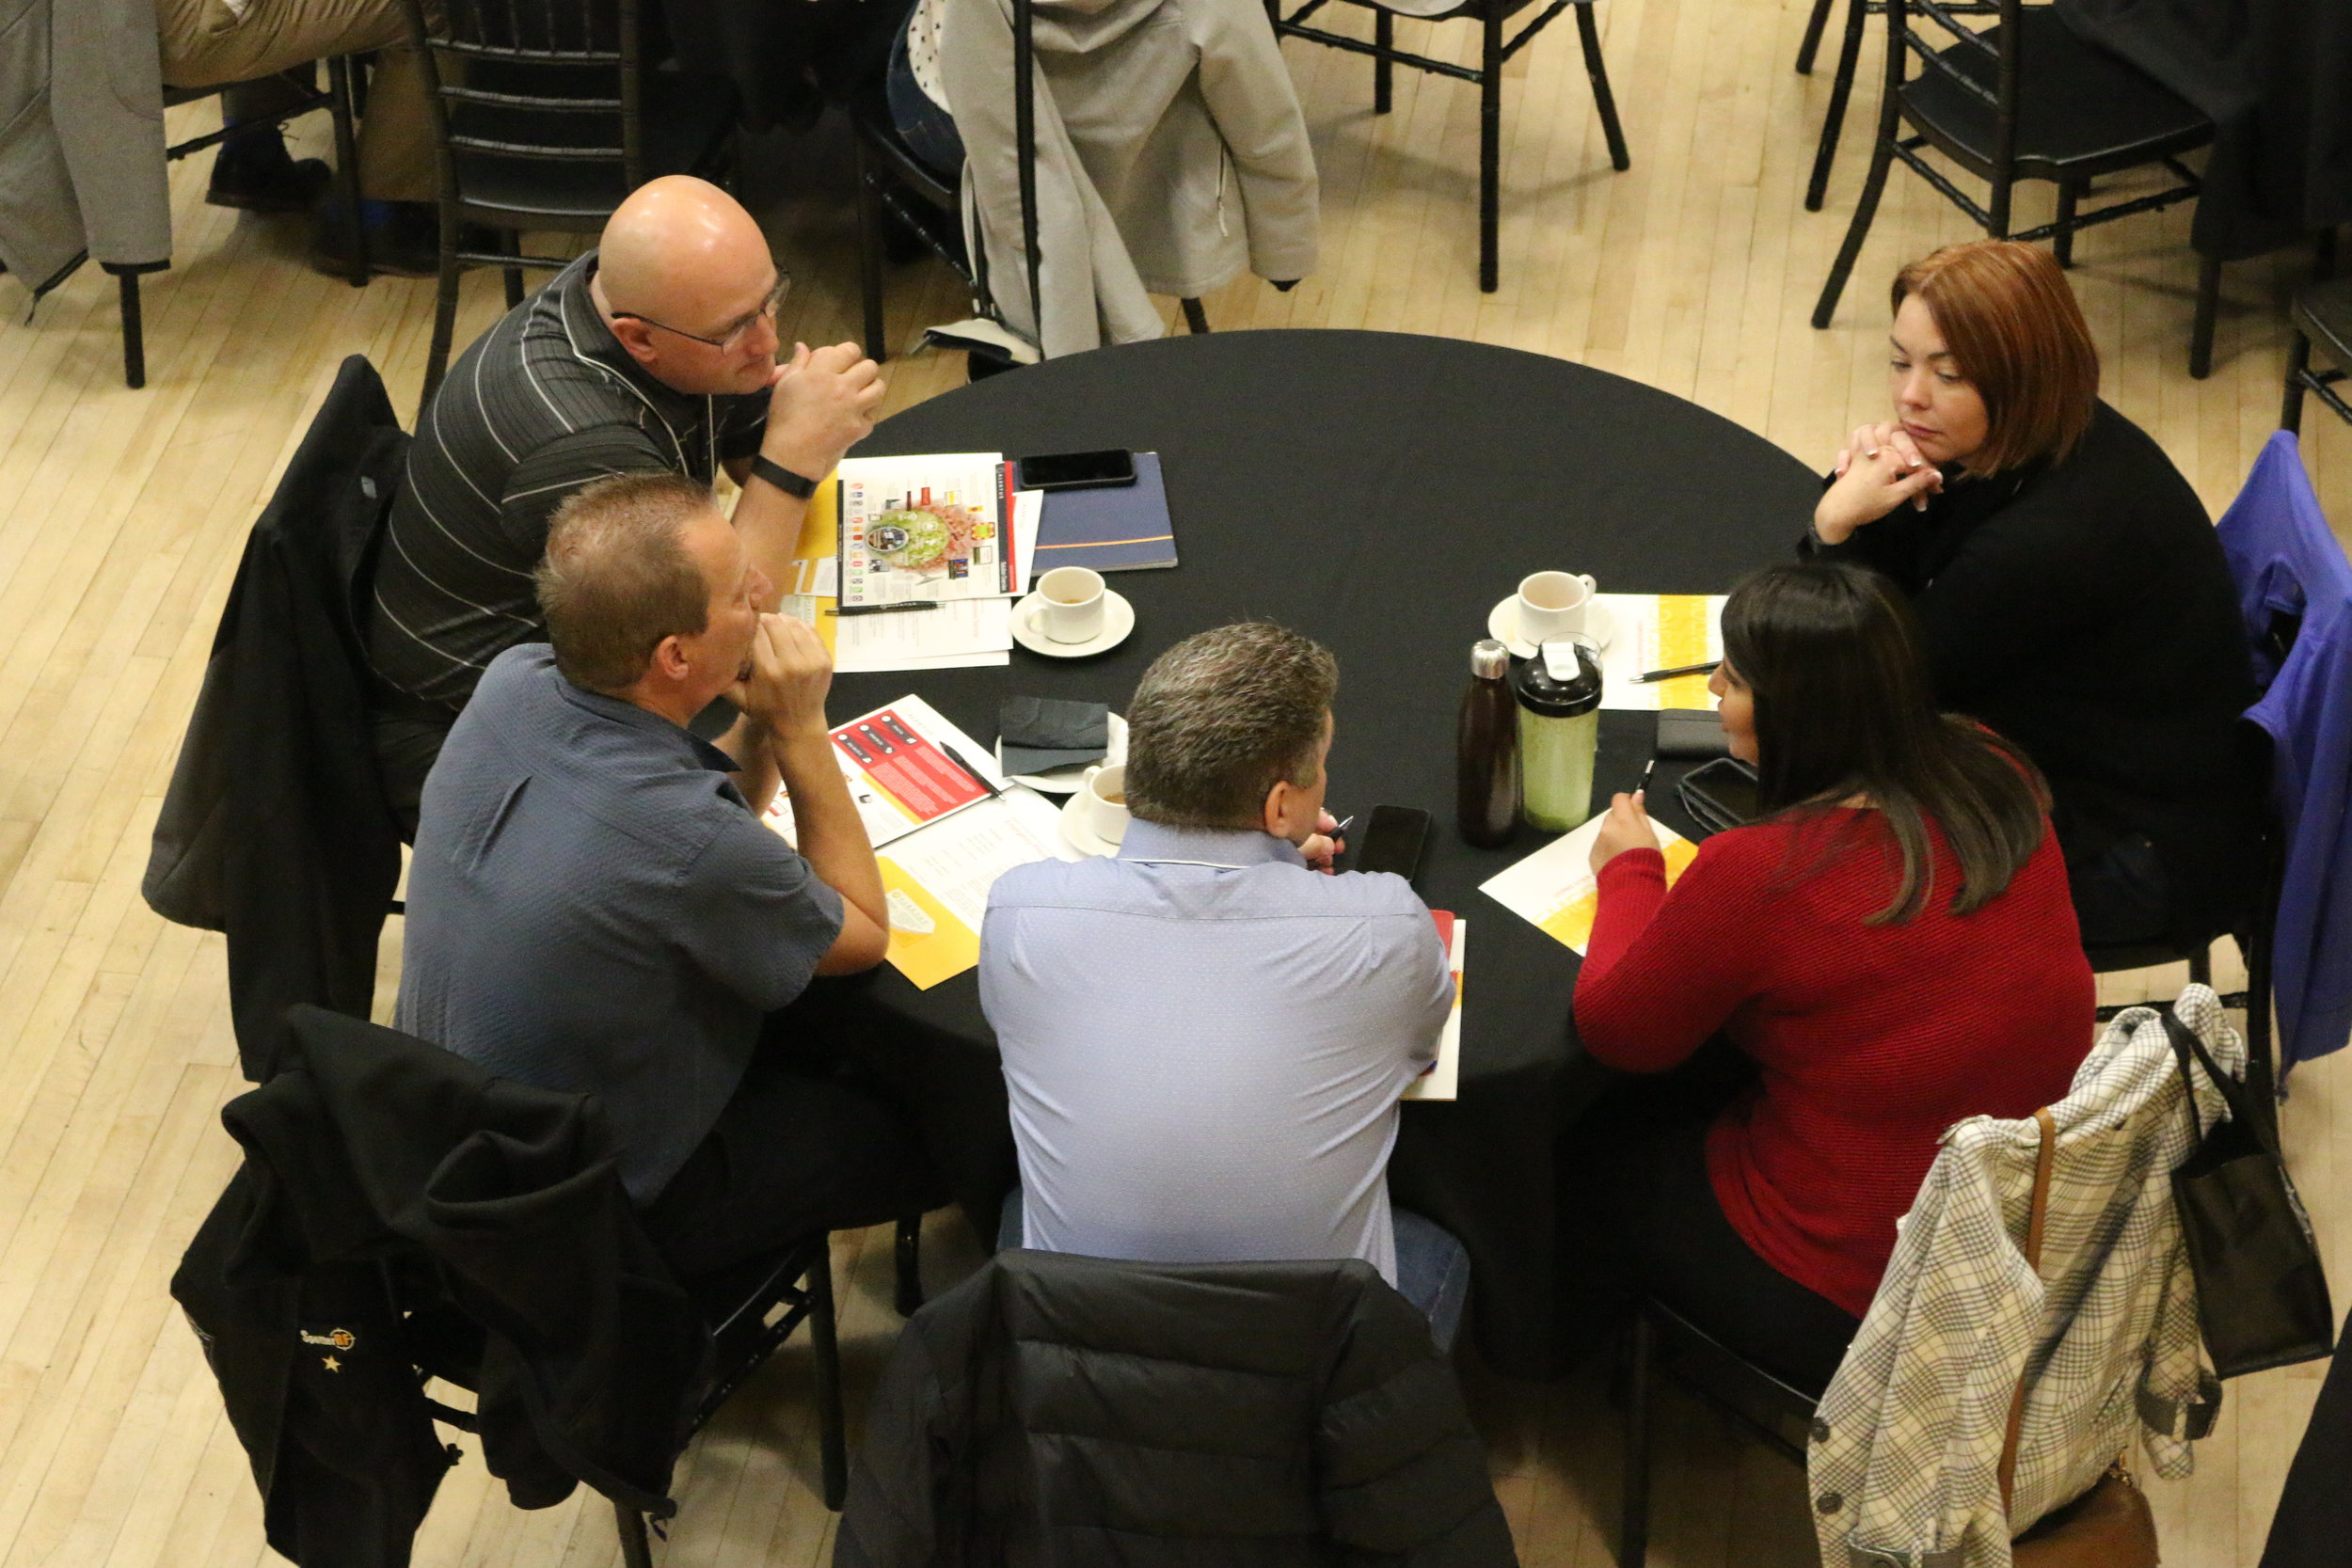 Attendees had the opportunity to engage and ask questions as the panel discussion looked at what happens during a lockdown from both the facility and police point-of-views.